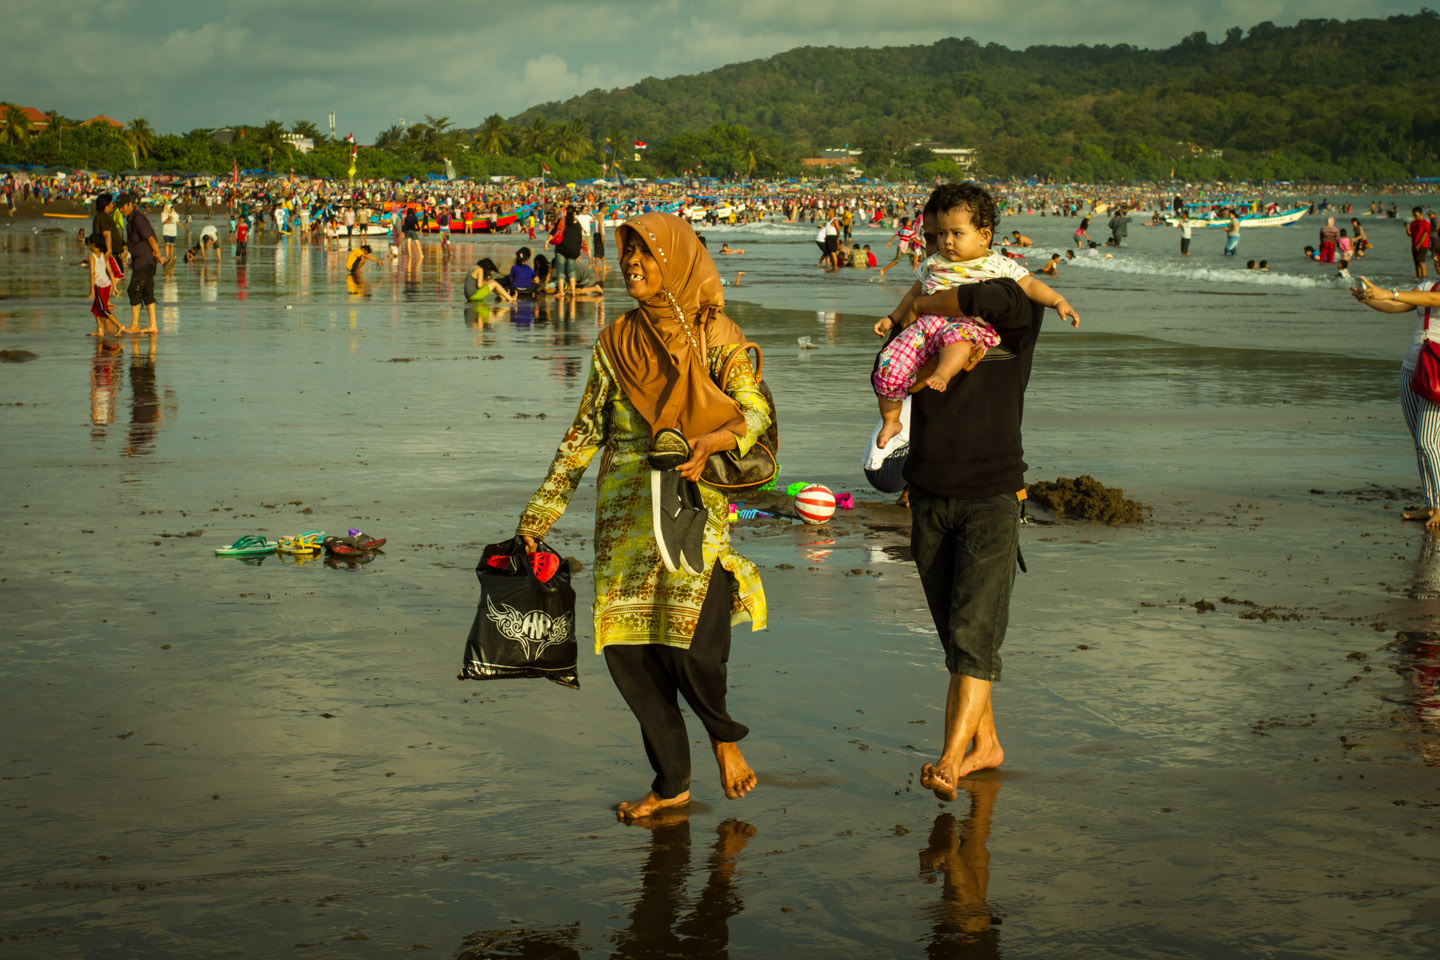 Muslim family at the surfing beach during Ramadan Idul Fitri Pangandaran Java Indonesia Indonesien